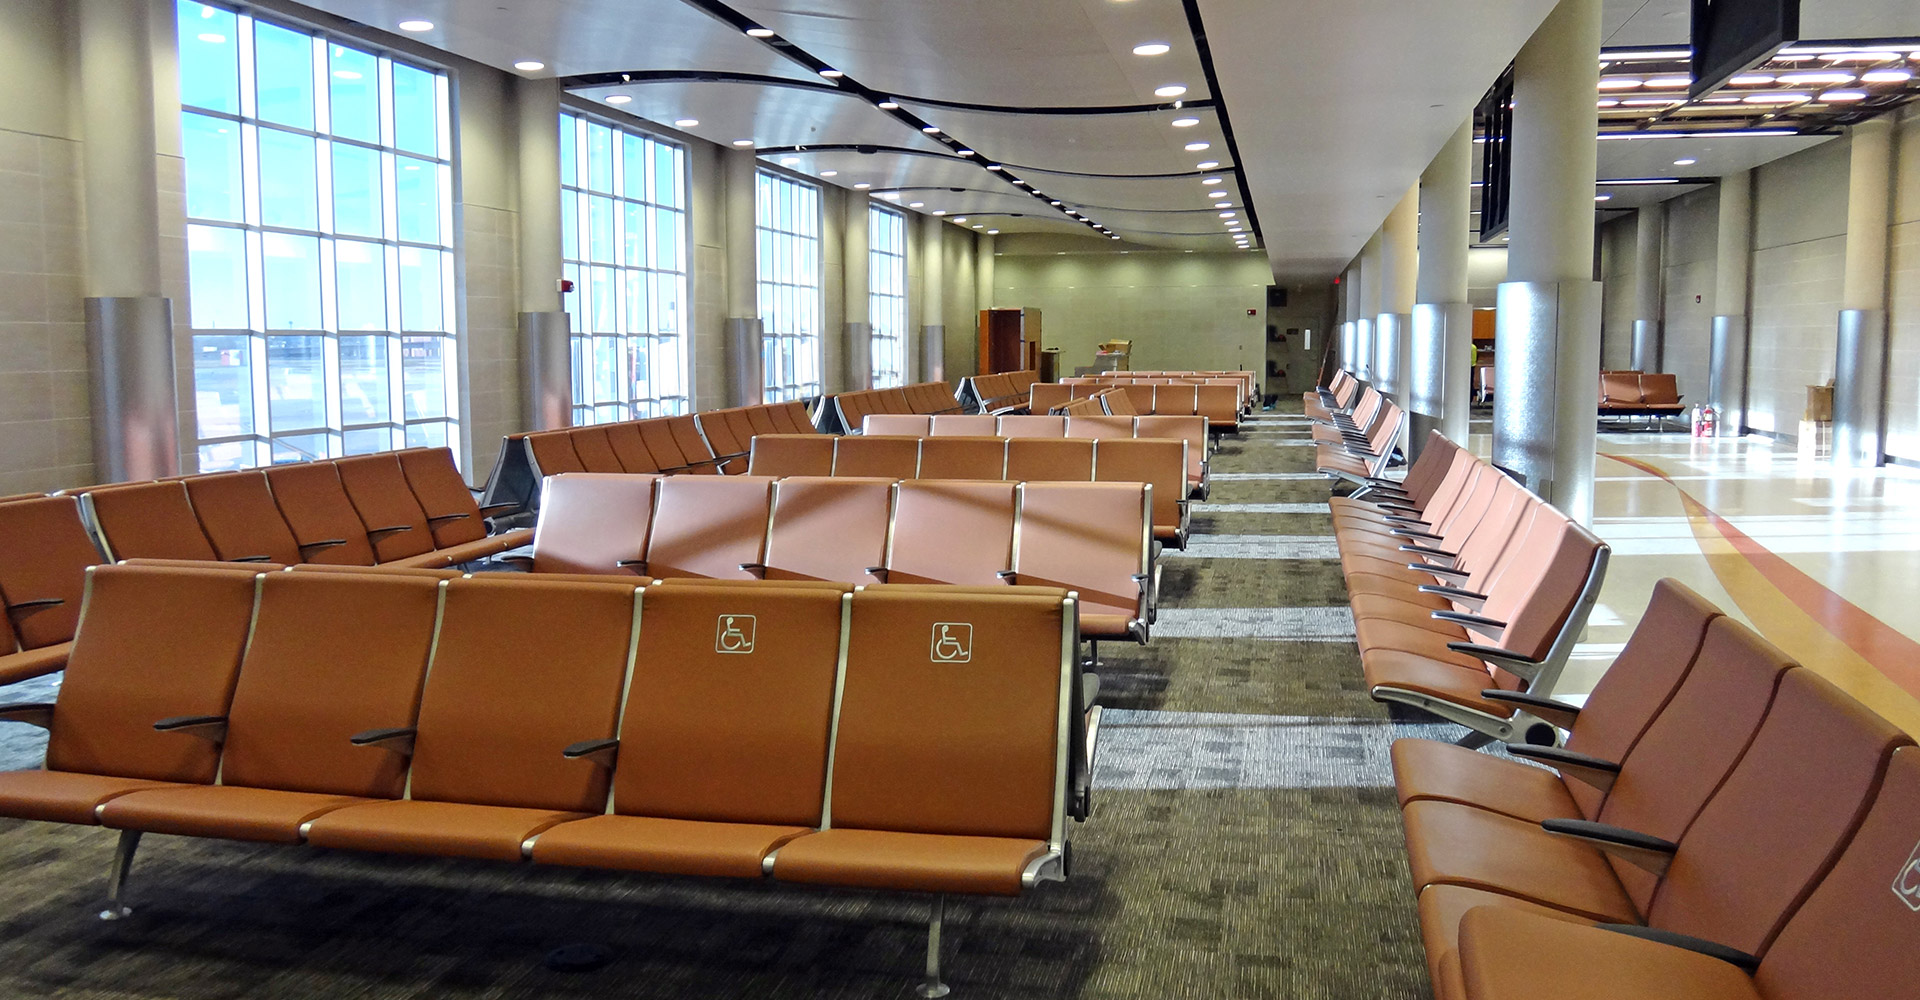 San Antonio International Airport Interior Seating.